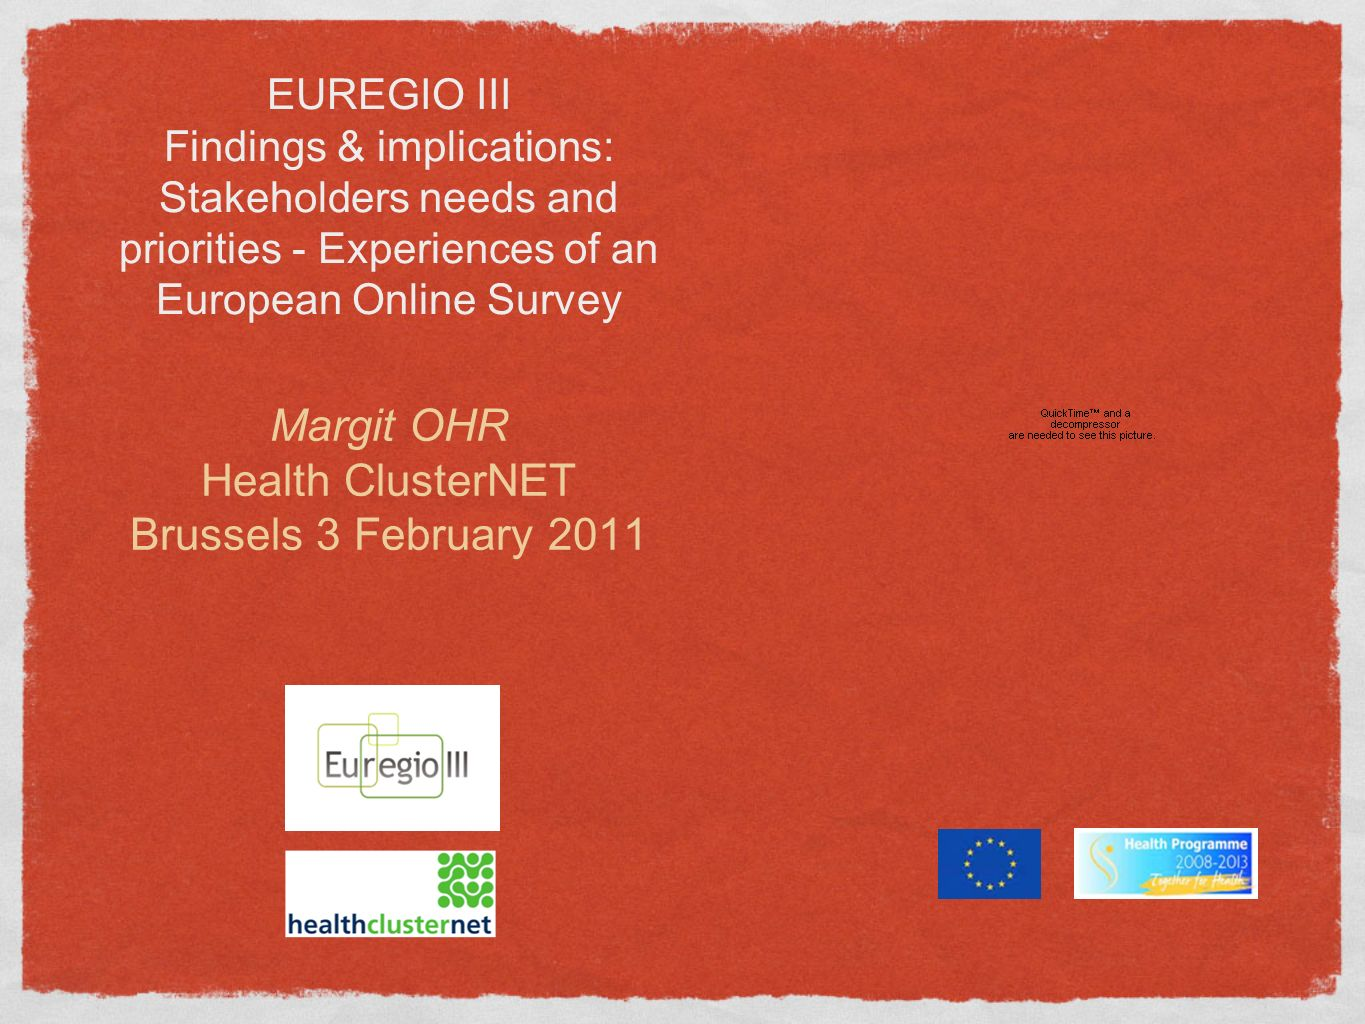 EUREGIO III Findings & implications: Stakeholders needs and priorities - Experiences of an European Online Survey Margit OHR Health ClusterNET Brussel